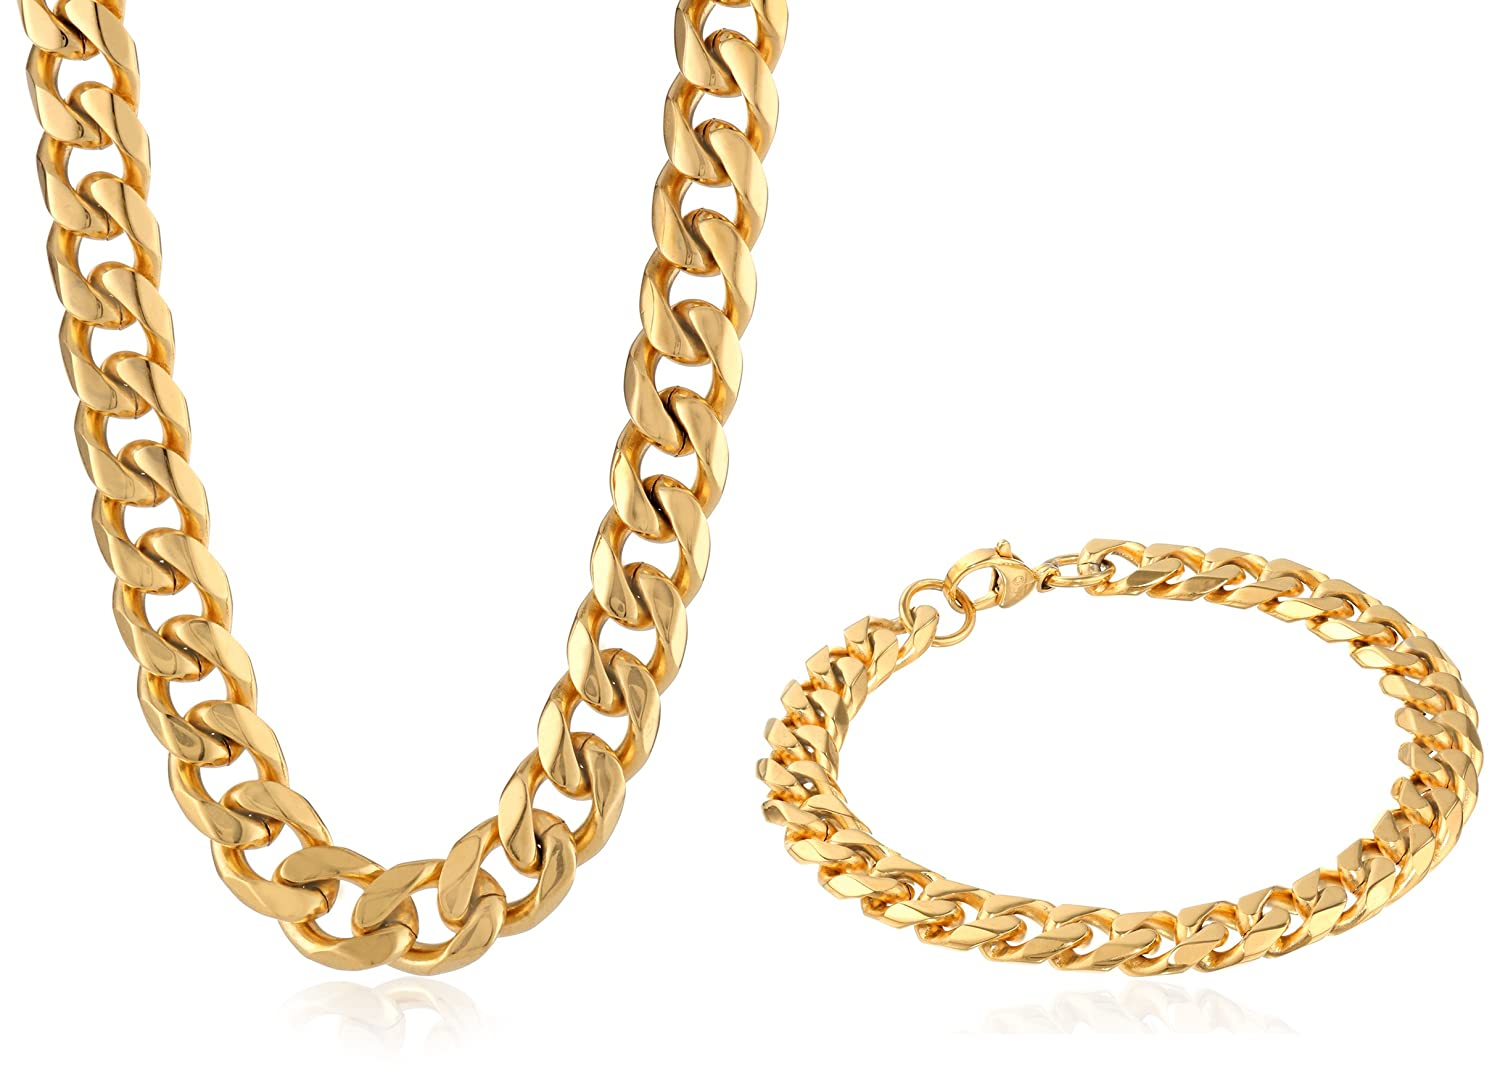 Mens GoldTone Stainless Steel CurbChain Bracelet and Necklace